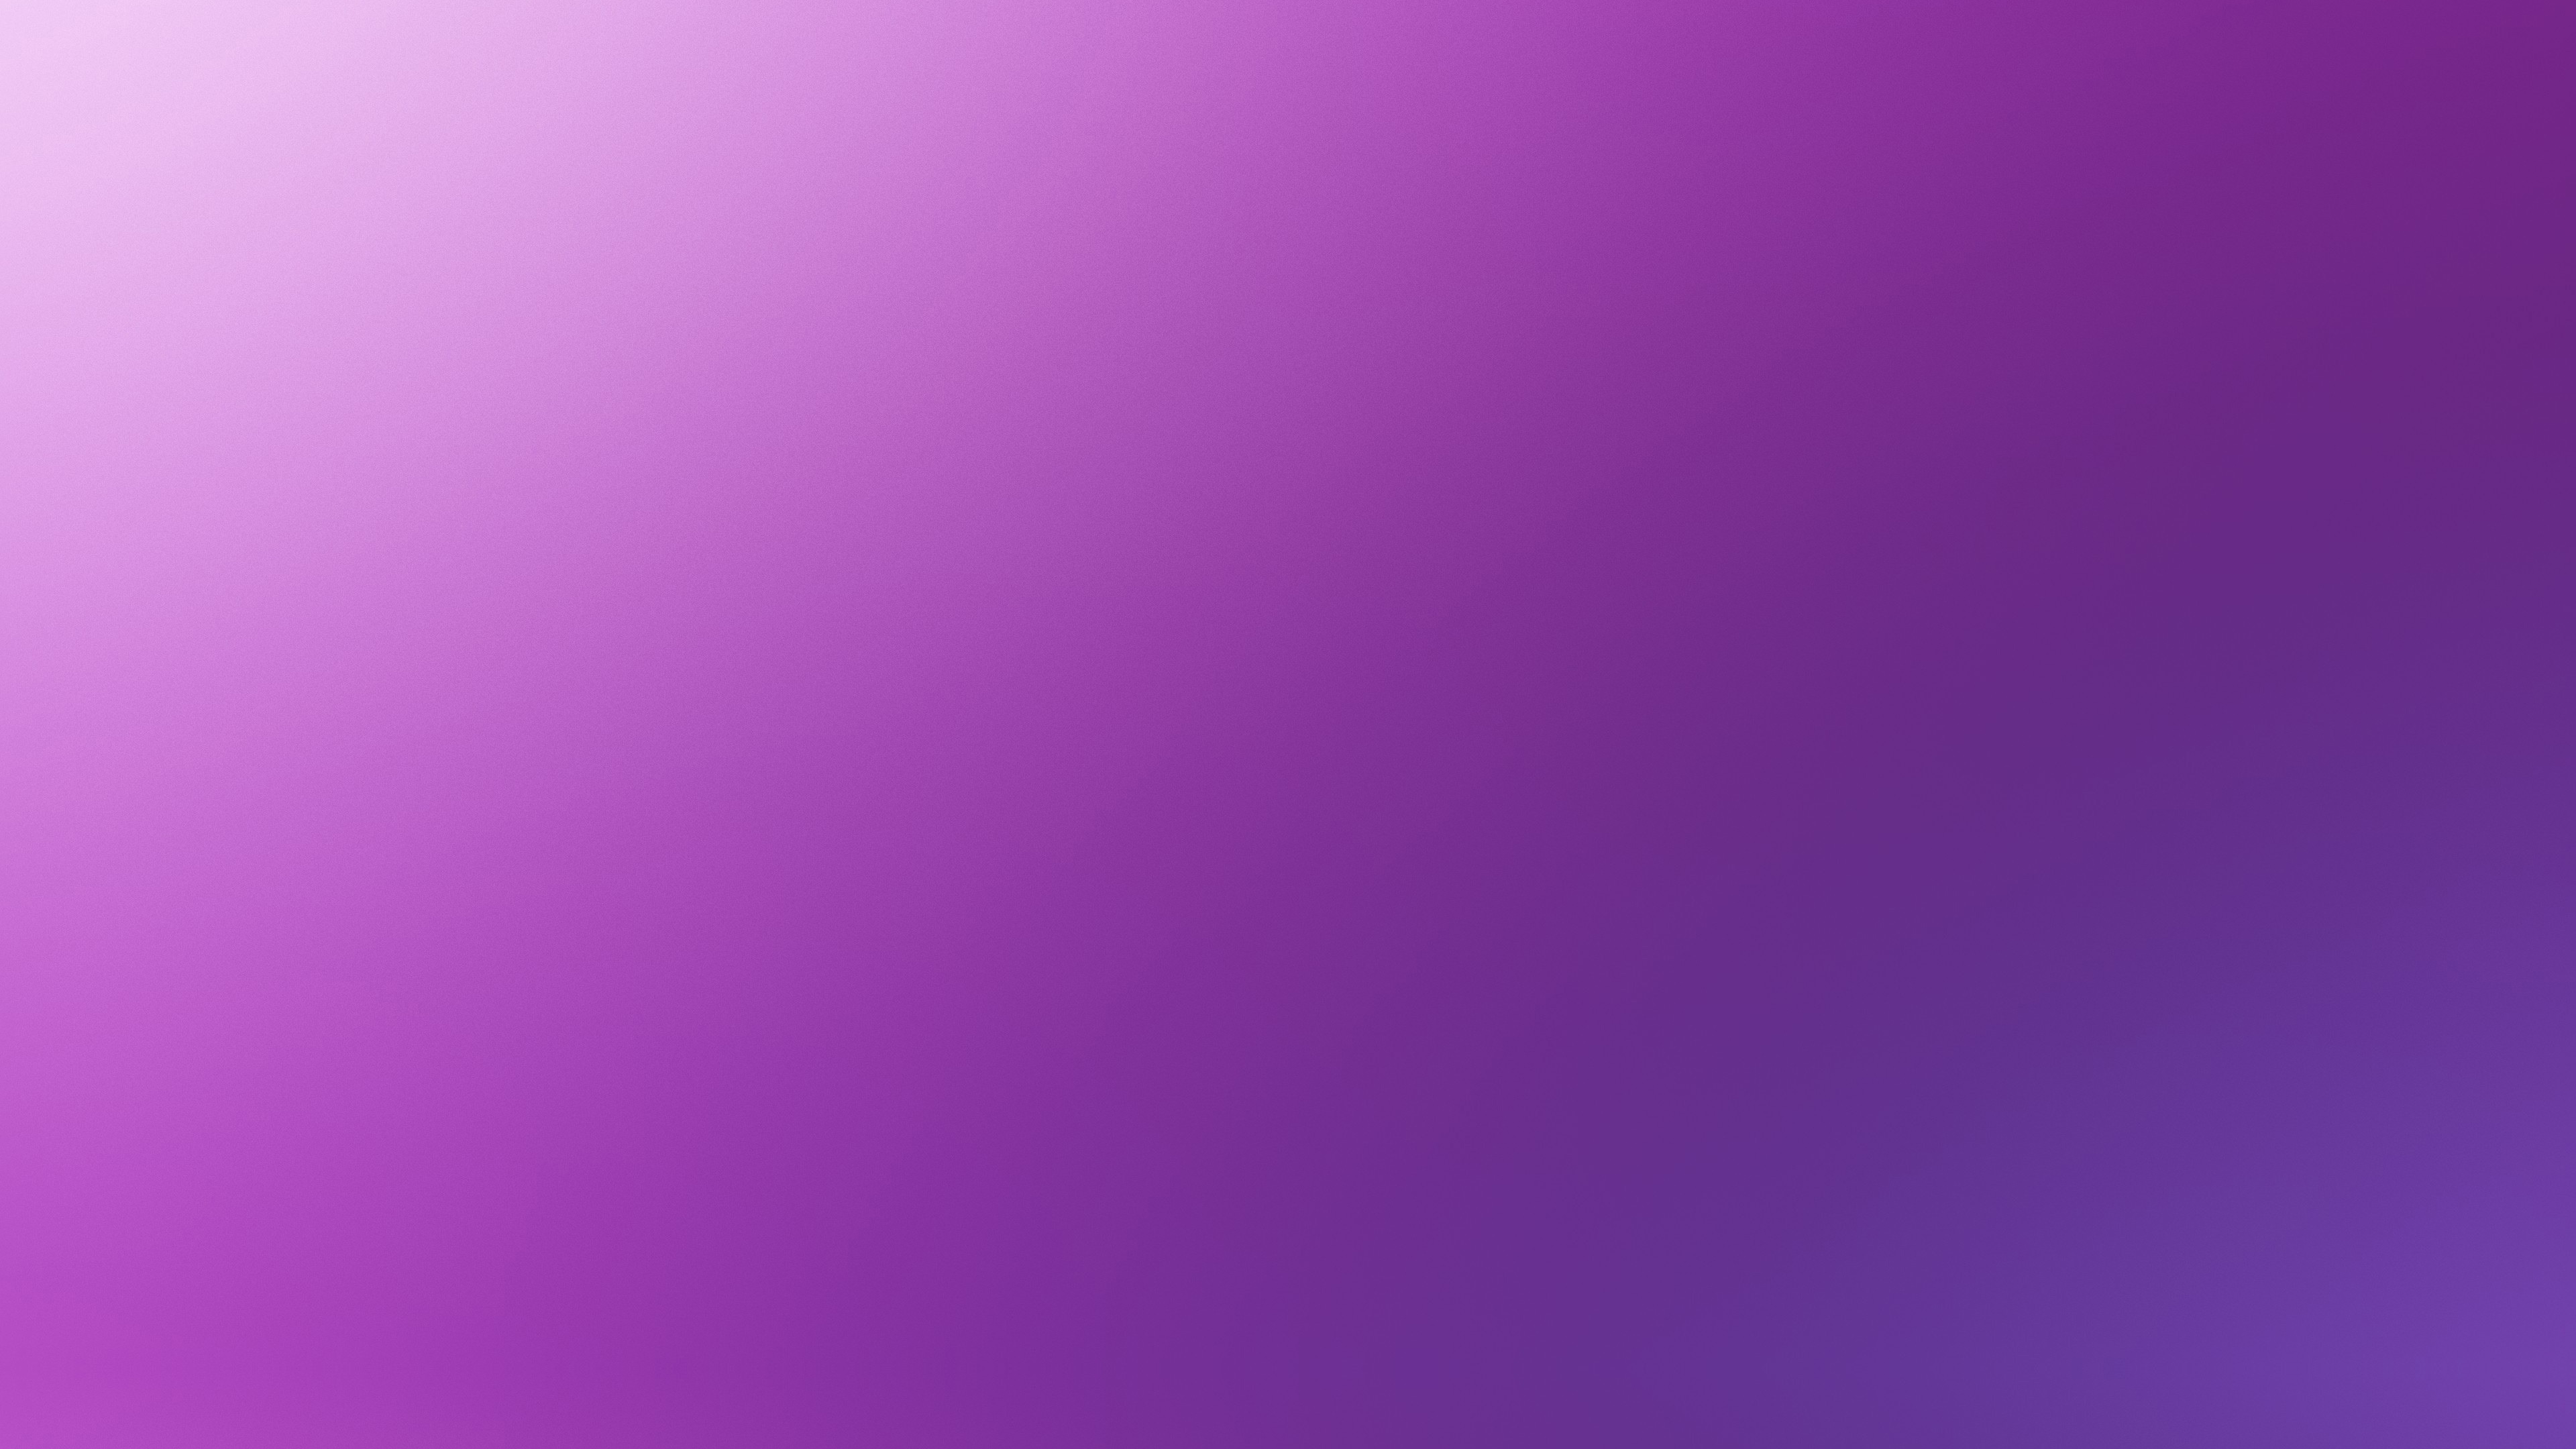 Purple gradient abstract vector image - 3840x2160 wallpaper download